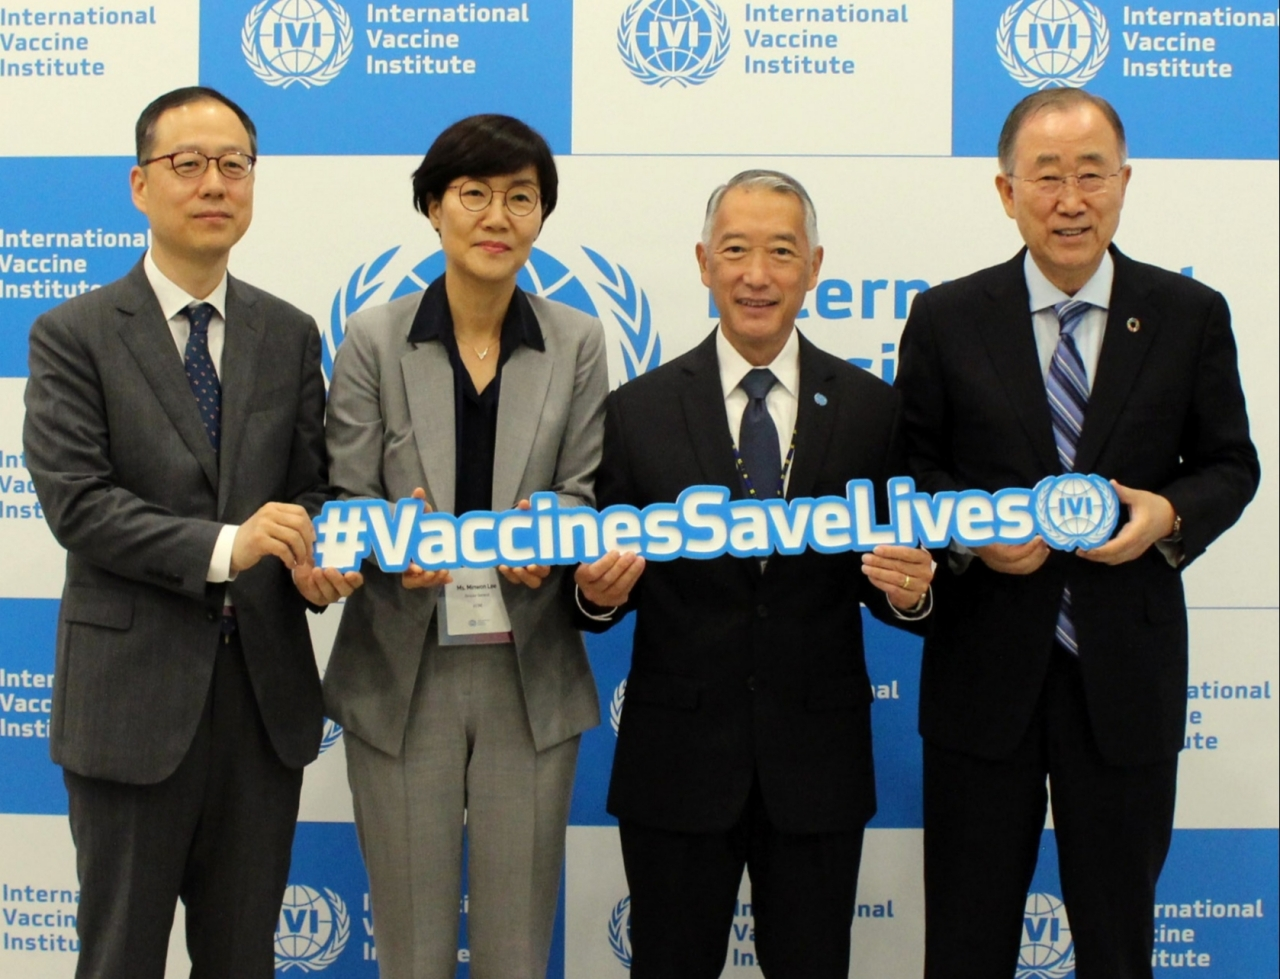 (From left) Ki-hwan Kweon, director general in charge of the Ministry of Foreign Affairs' international organizations bureau; Min-won Lee, director general of the Center for Public Health Emergency Preparedness and Response at the Korea Centers for Disease Control & Prevention; Jerome Kim, director general of the International Vaccine Institute; and Former UN Secretary-General Ban Ki-moon pose during a photo session at IVI State Forum 2019. (International Vaccine Institute)